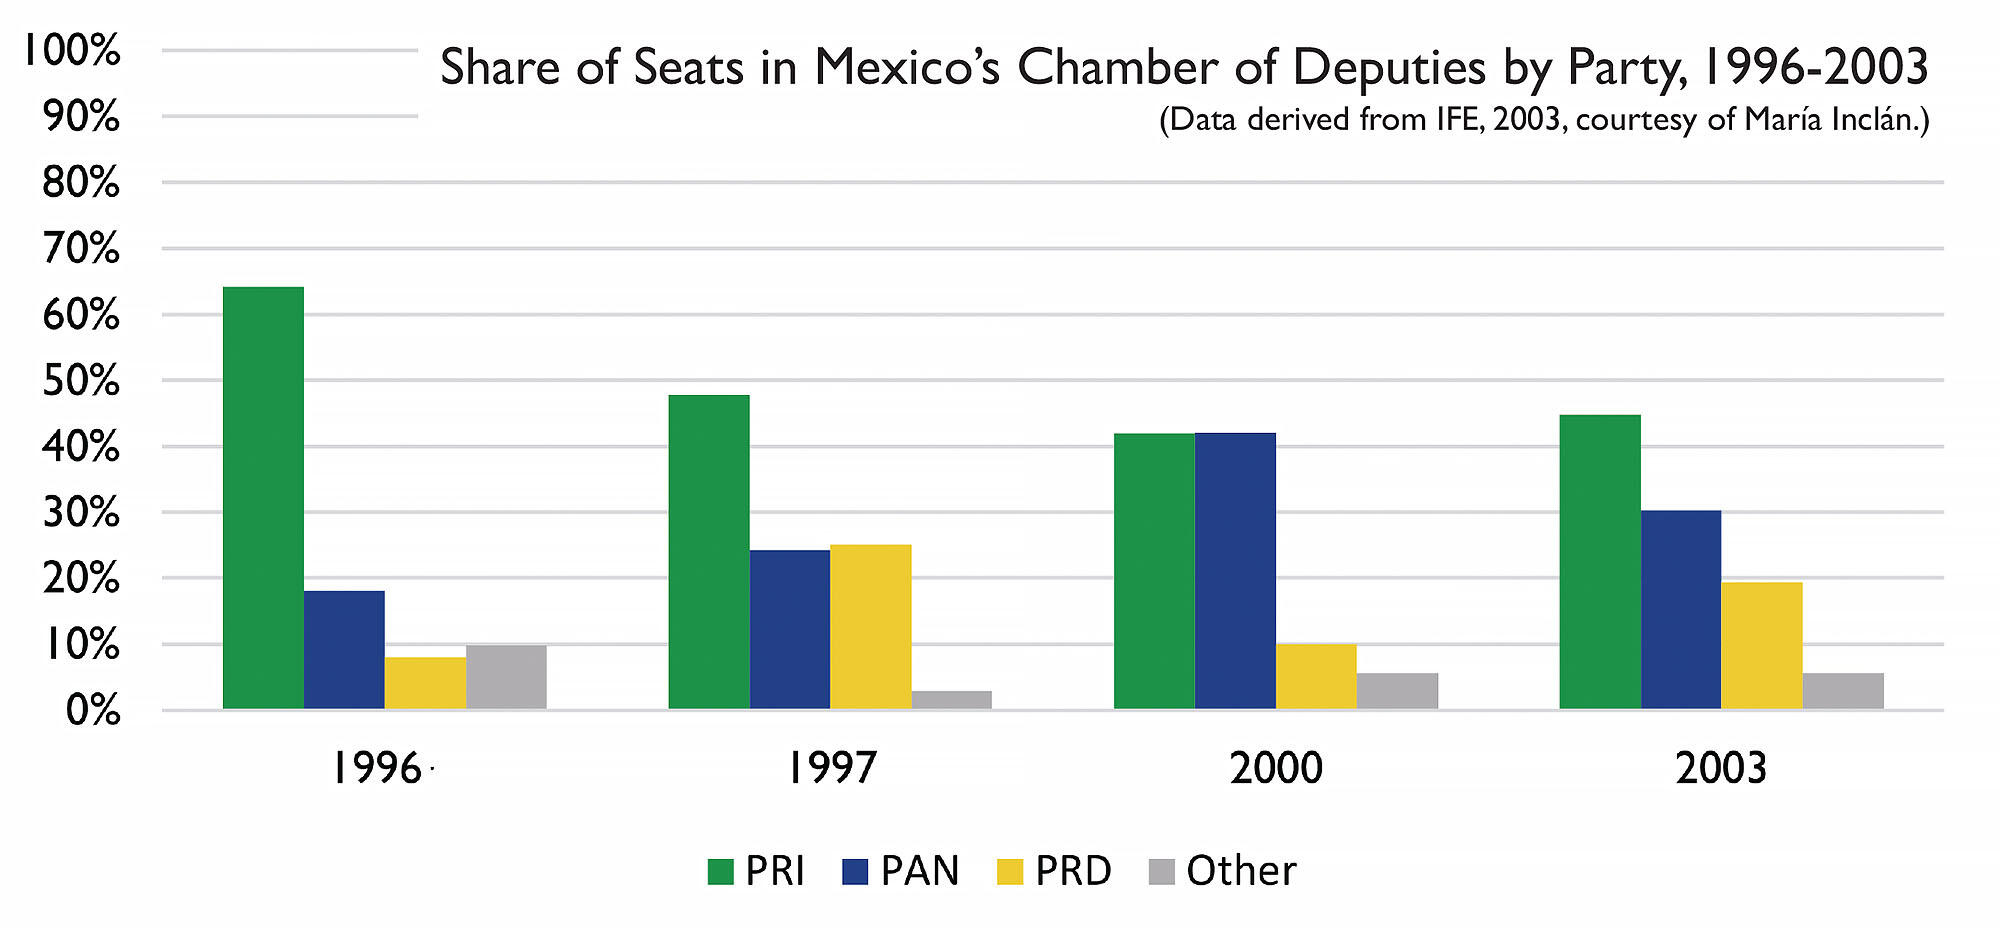 Share of Seats in Mexico's Chamber of Deputies by Party, 1996-2003 (Data derived from IFE, 2003, courtesy of María Inclán.)